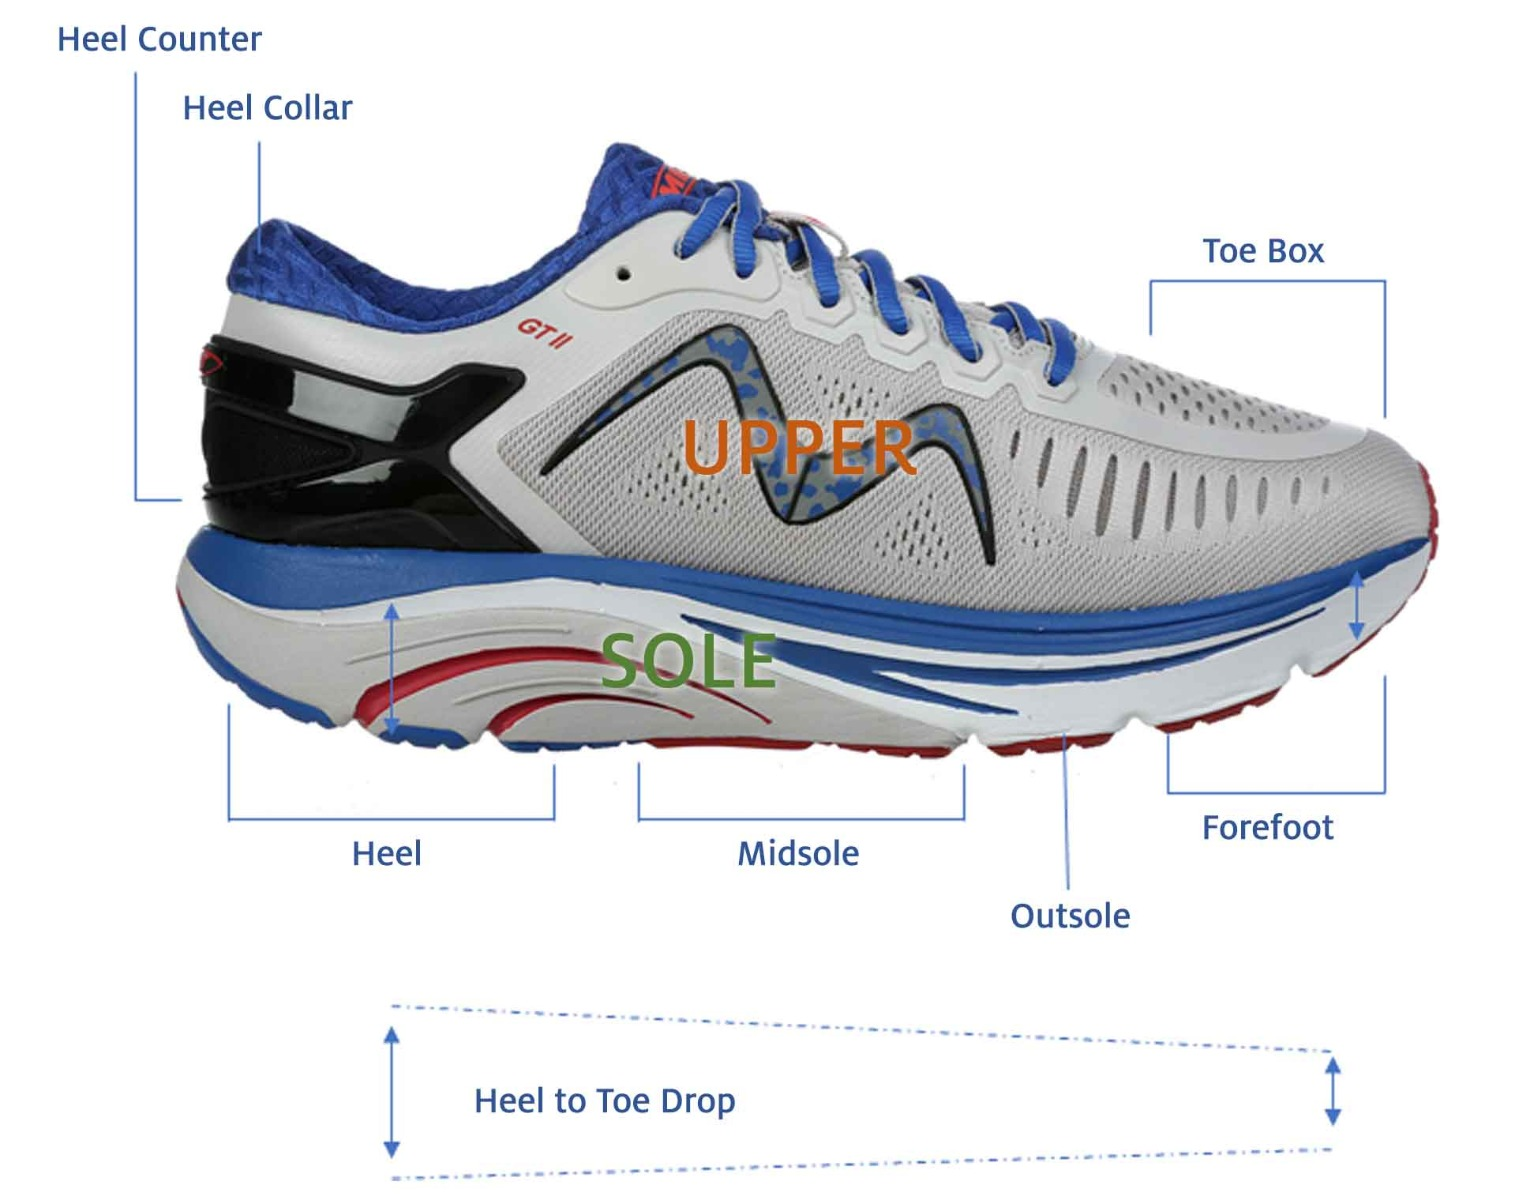 Diagram of the Parts of a Shoe